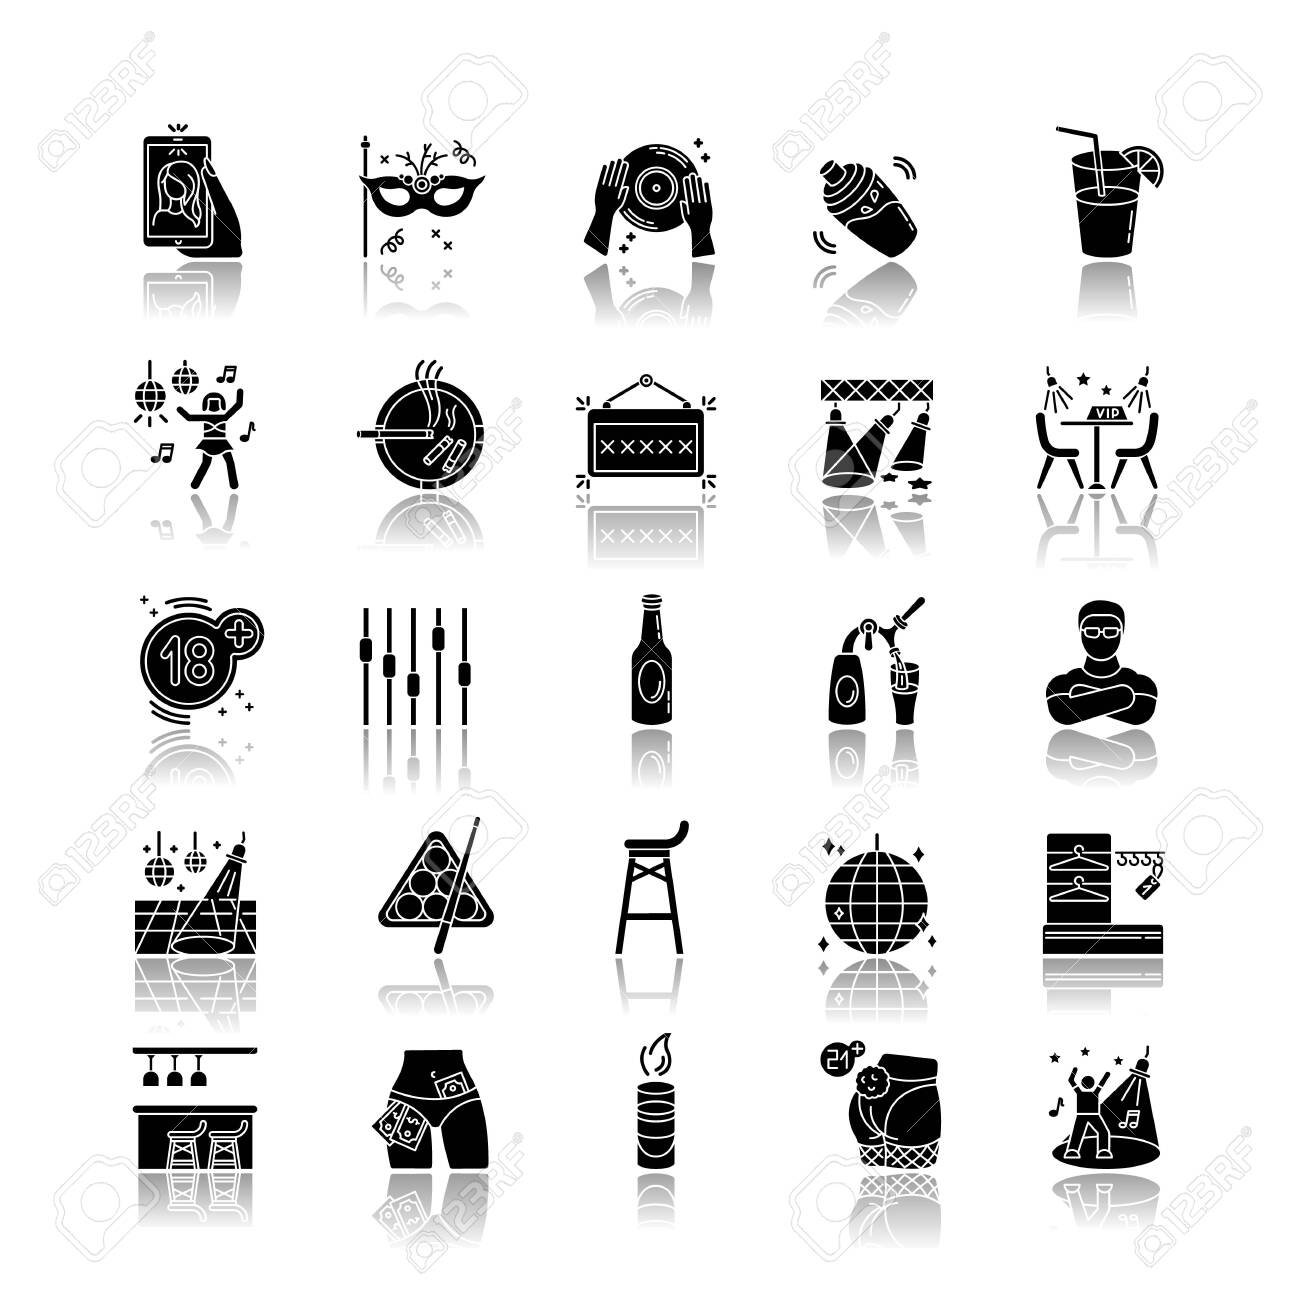 Night club drop shadow black glyph icons set. Entertainment venue, dancing and drinking establishment. Nightclub lifestyle, late night party. Isolated vector illustrations on white space - 142186019